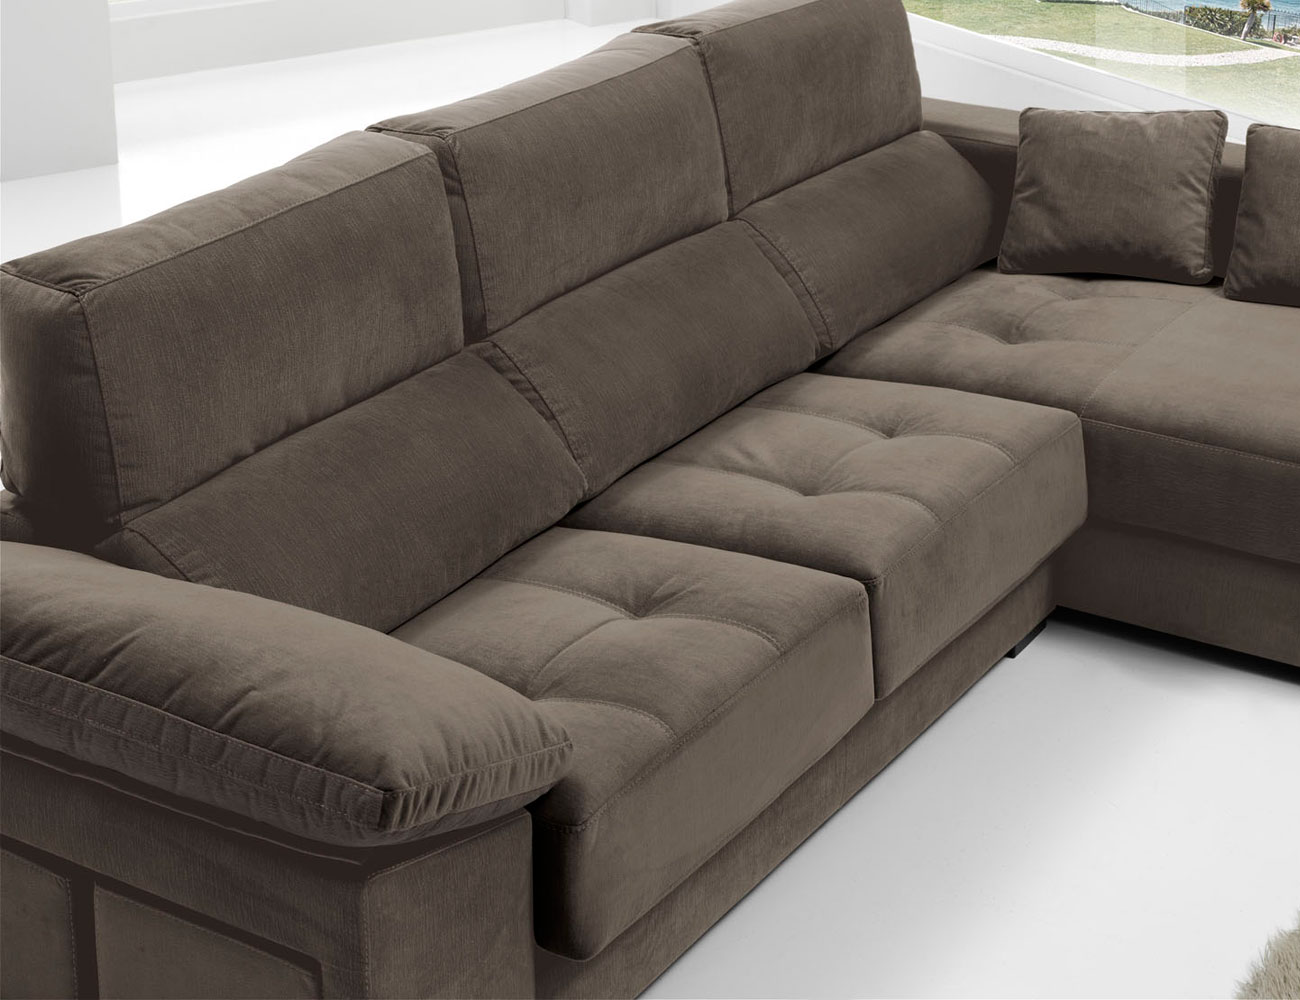 Sofa chaiselongue anti manchas bering pouf 254